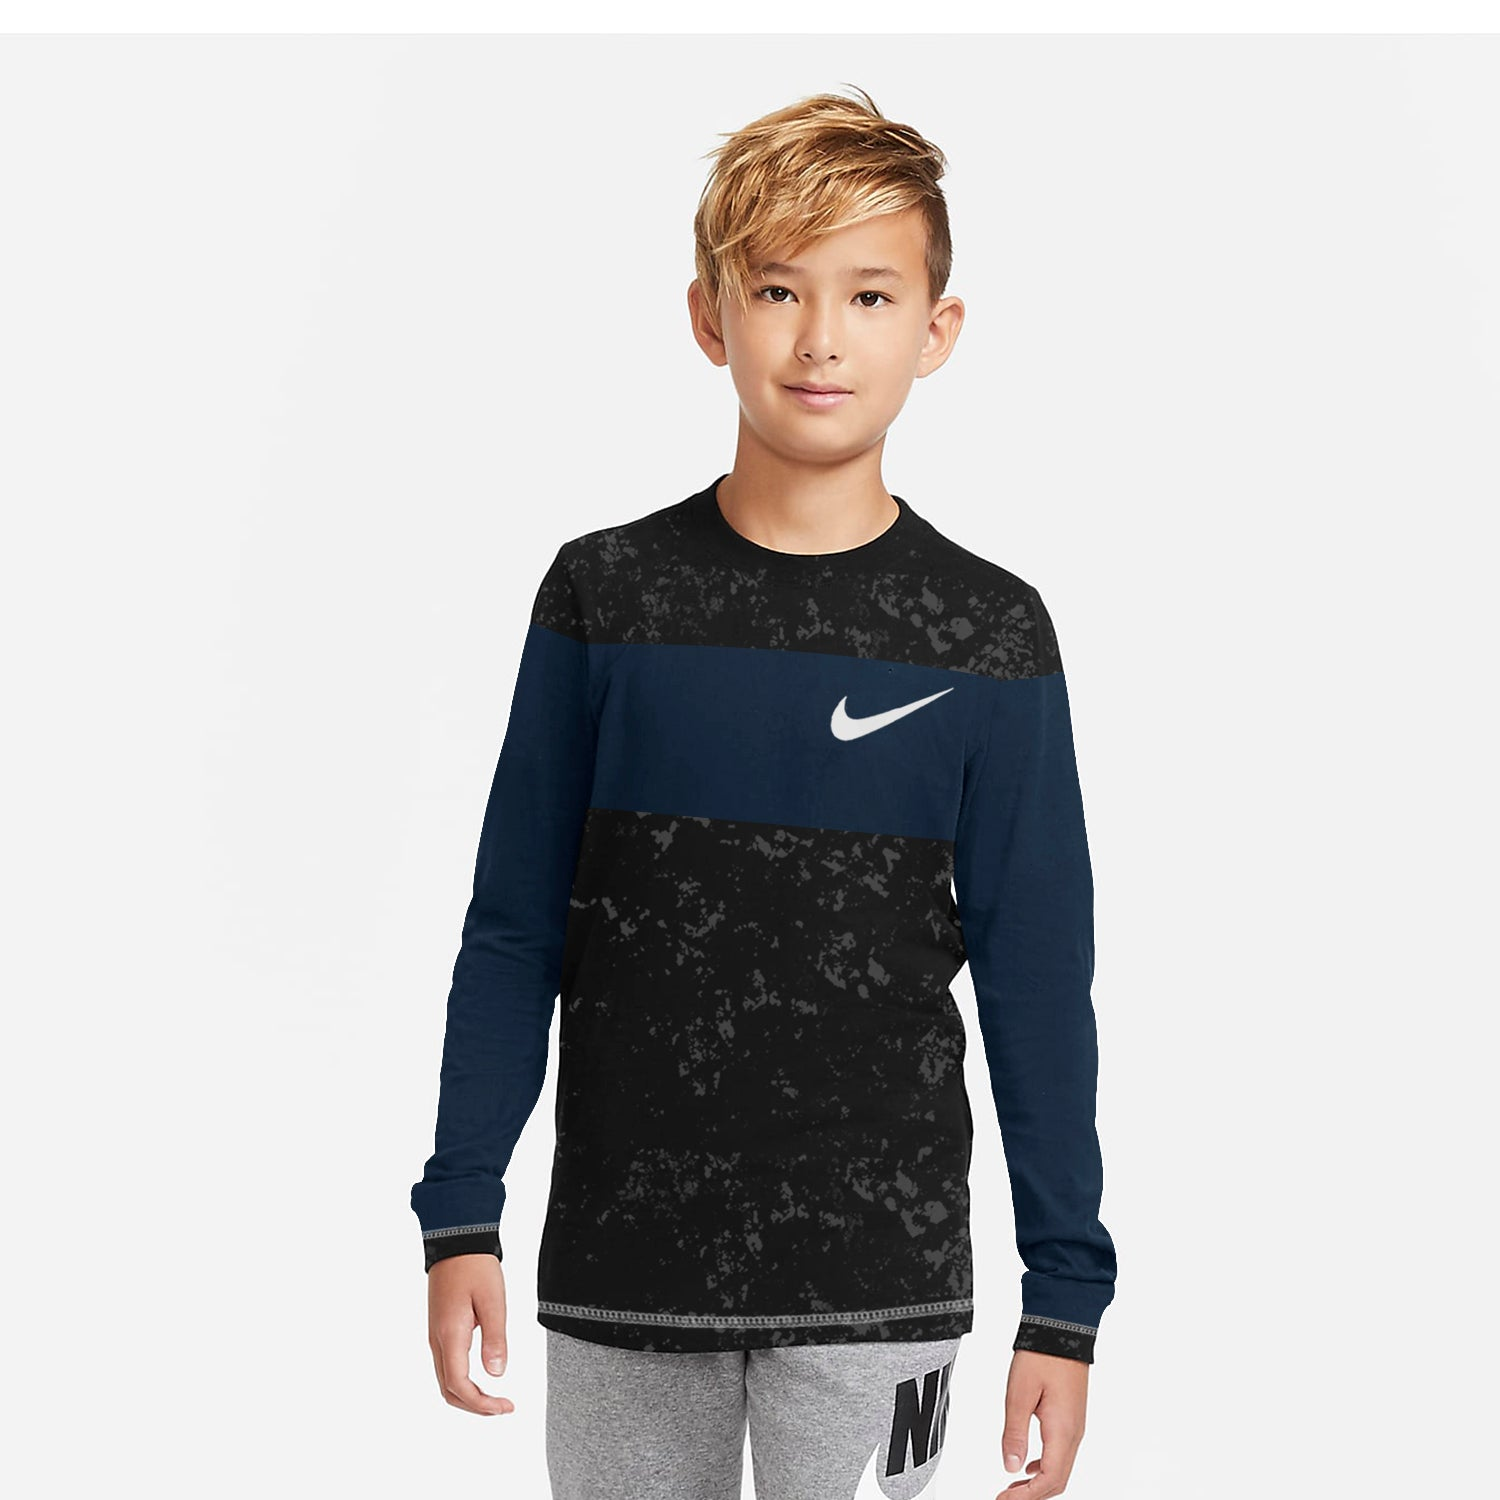 NK Crew Neck Single Jersey Long Sleeve Tee Shirt For Kids-Black Faded With Dark Navy Panel-SP3527